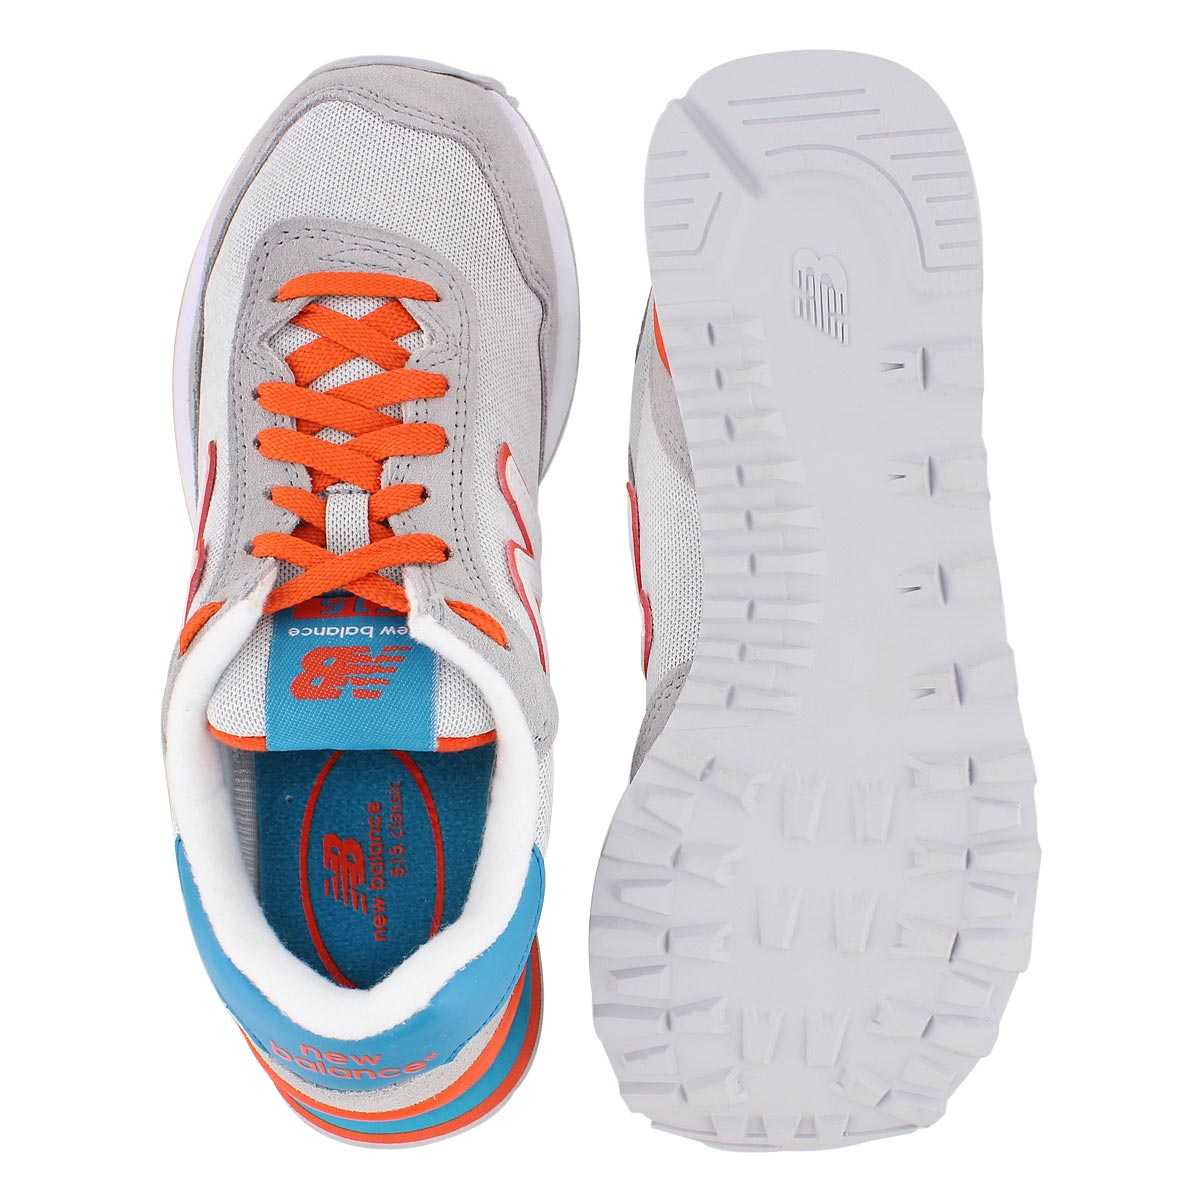 Lds 515 gry/orange lace up sneaker